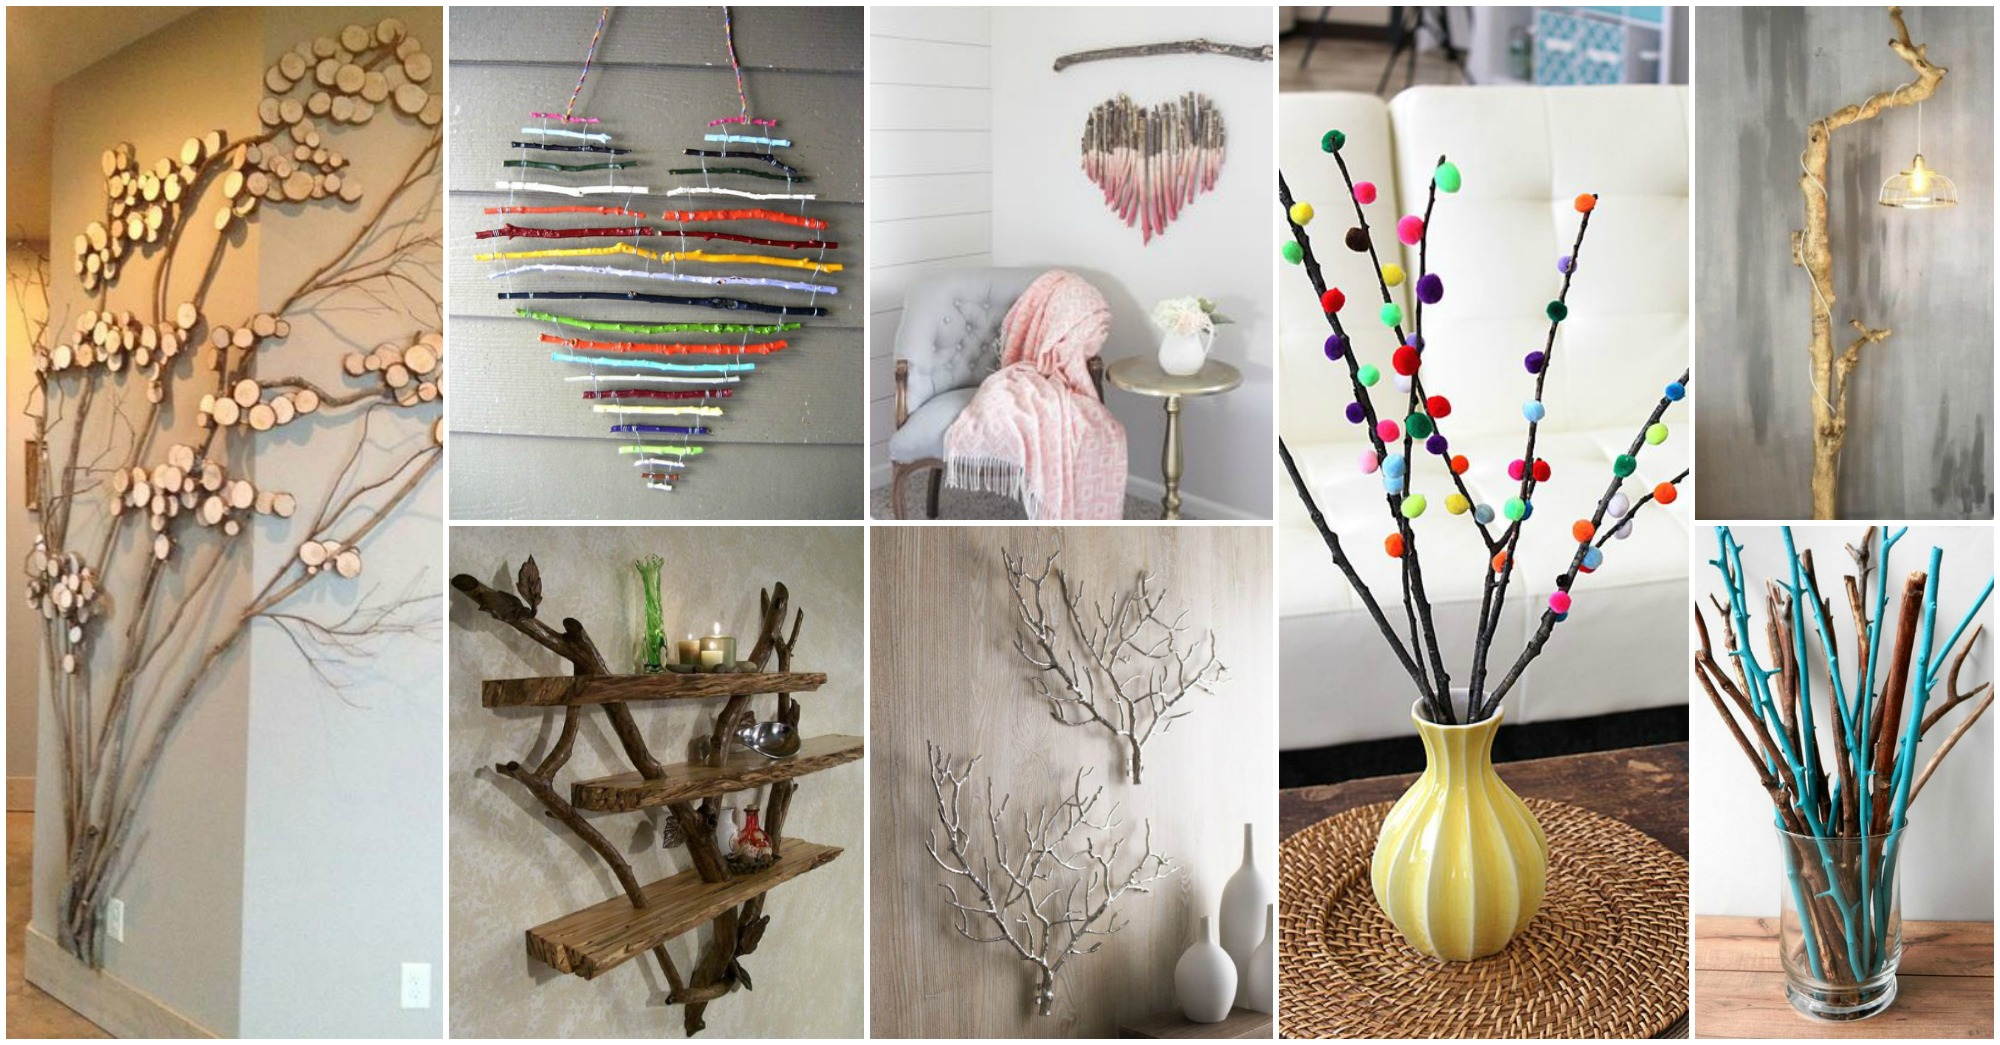 Diy tree branches home decor ideas for Simple home decor ideas